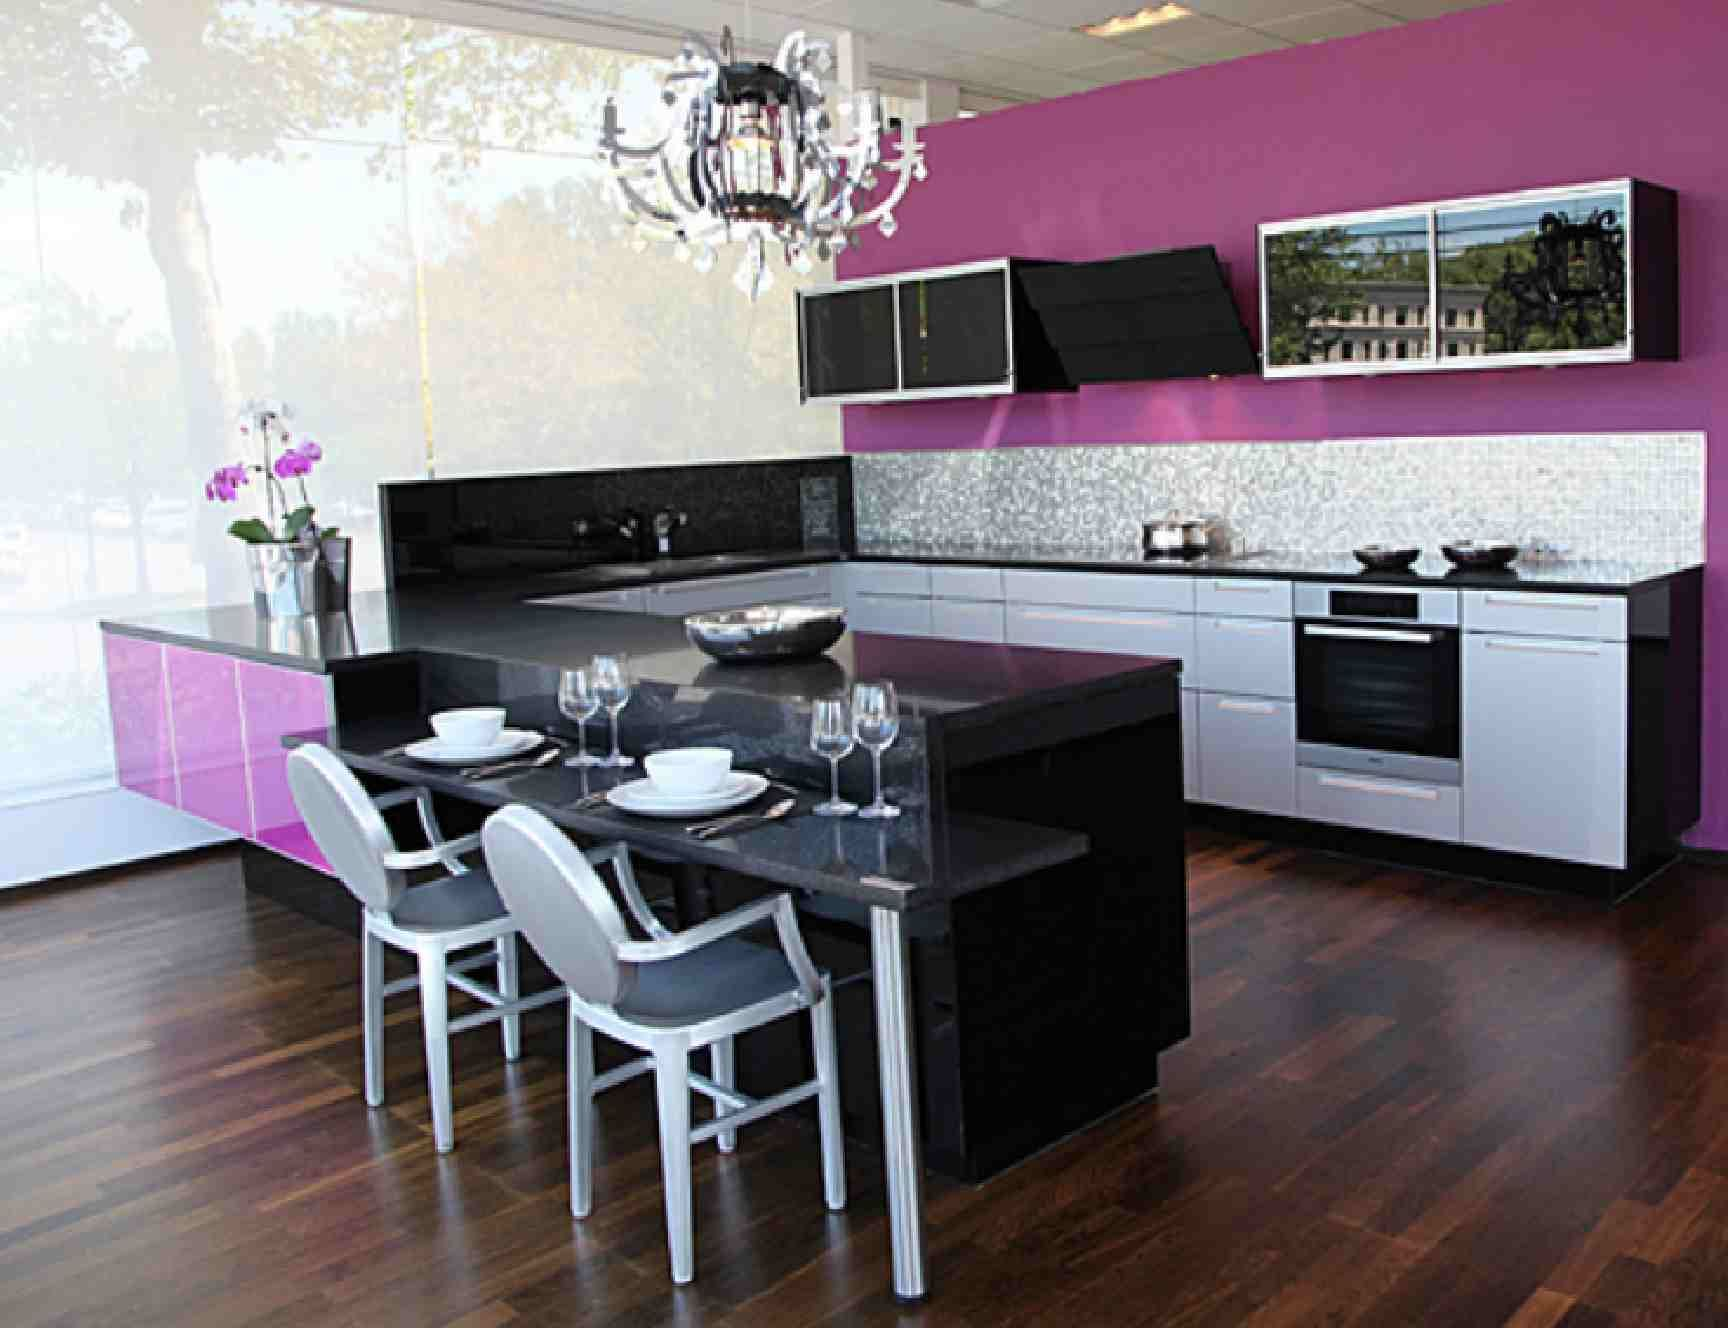 Elegant Purple Kitchen Inspiration Ideas #Kbhome